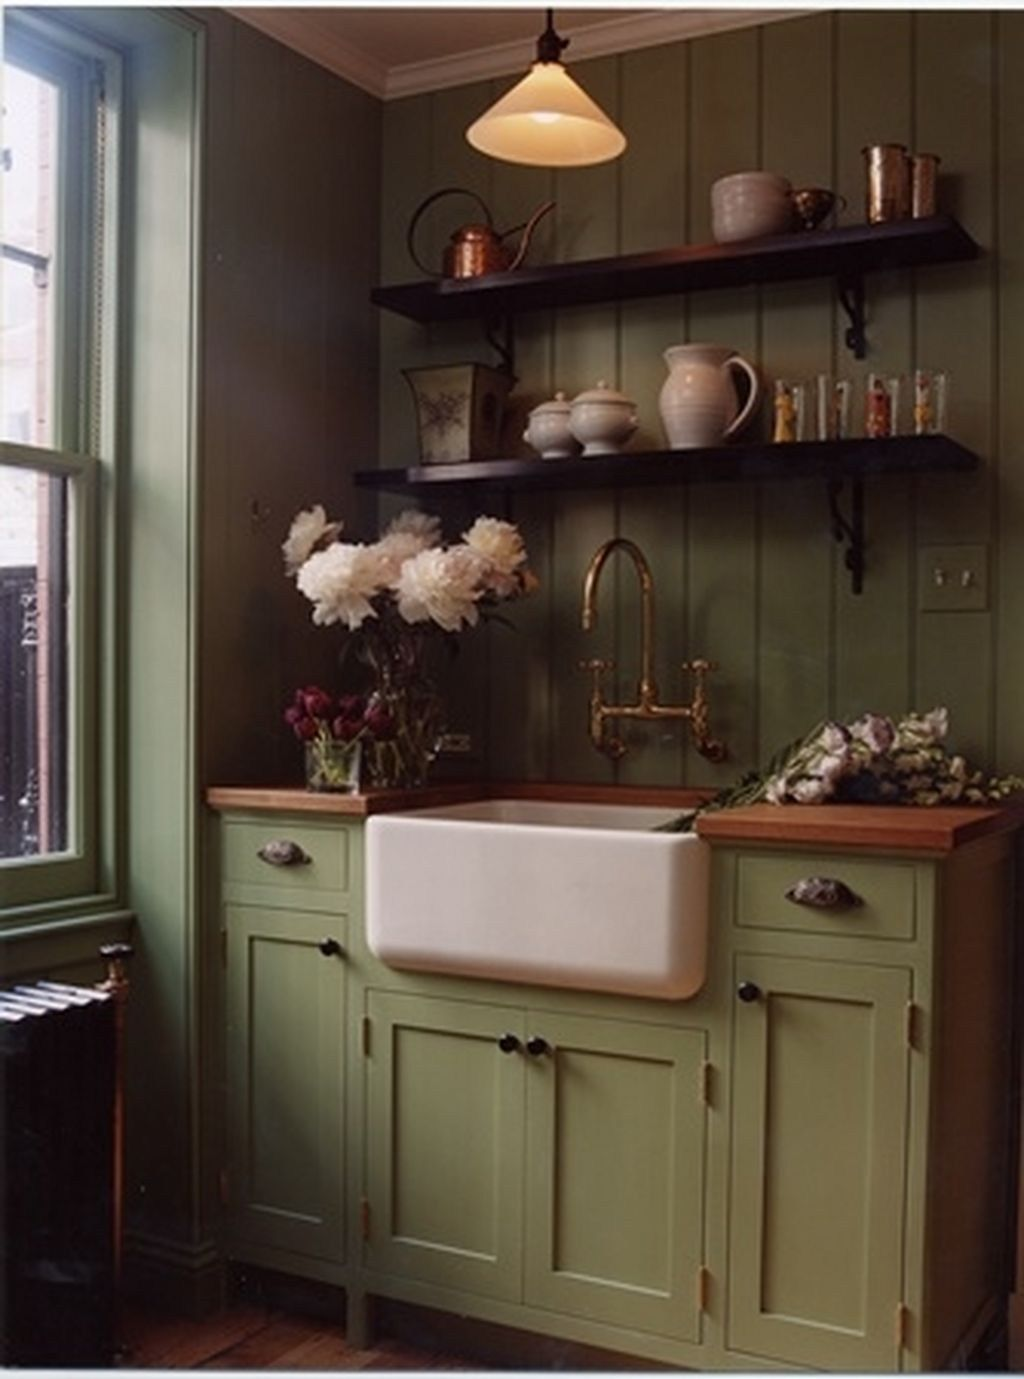 Inspiring Traditional Victorian Kitchen Remodel Ideas 17 Home Kitchens Kitchen Remodel Green Kitchen Cabinets